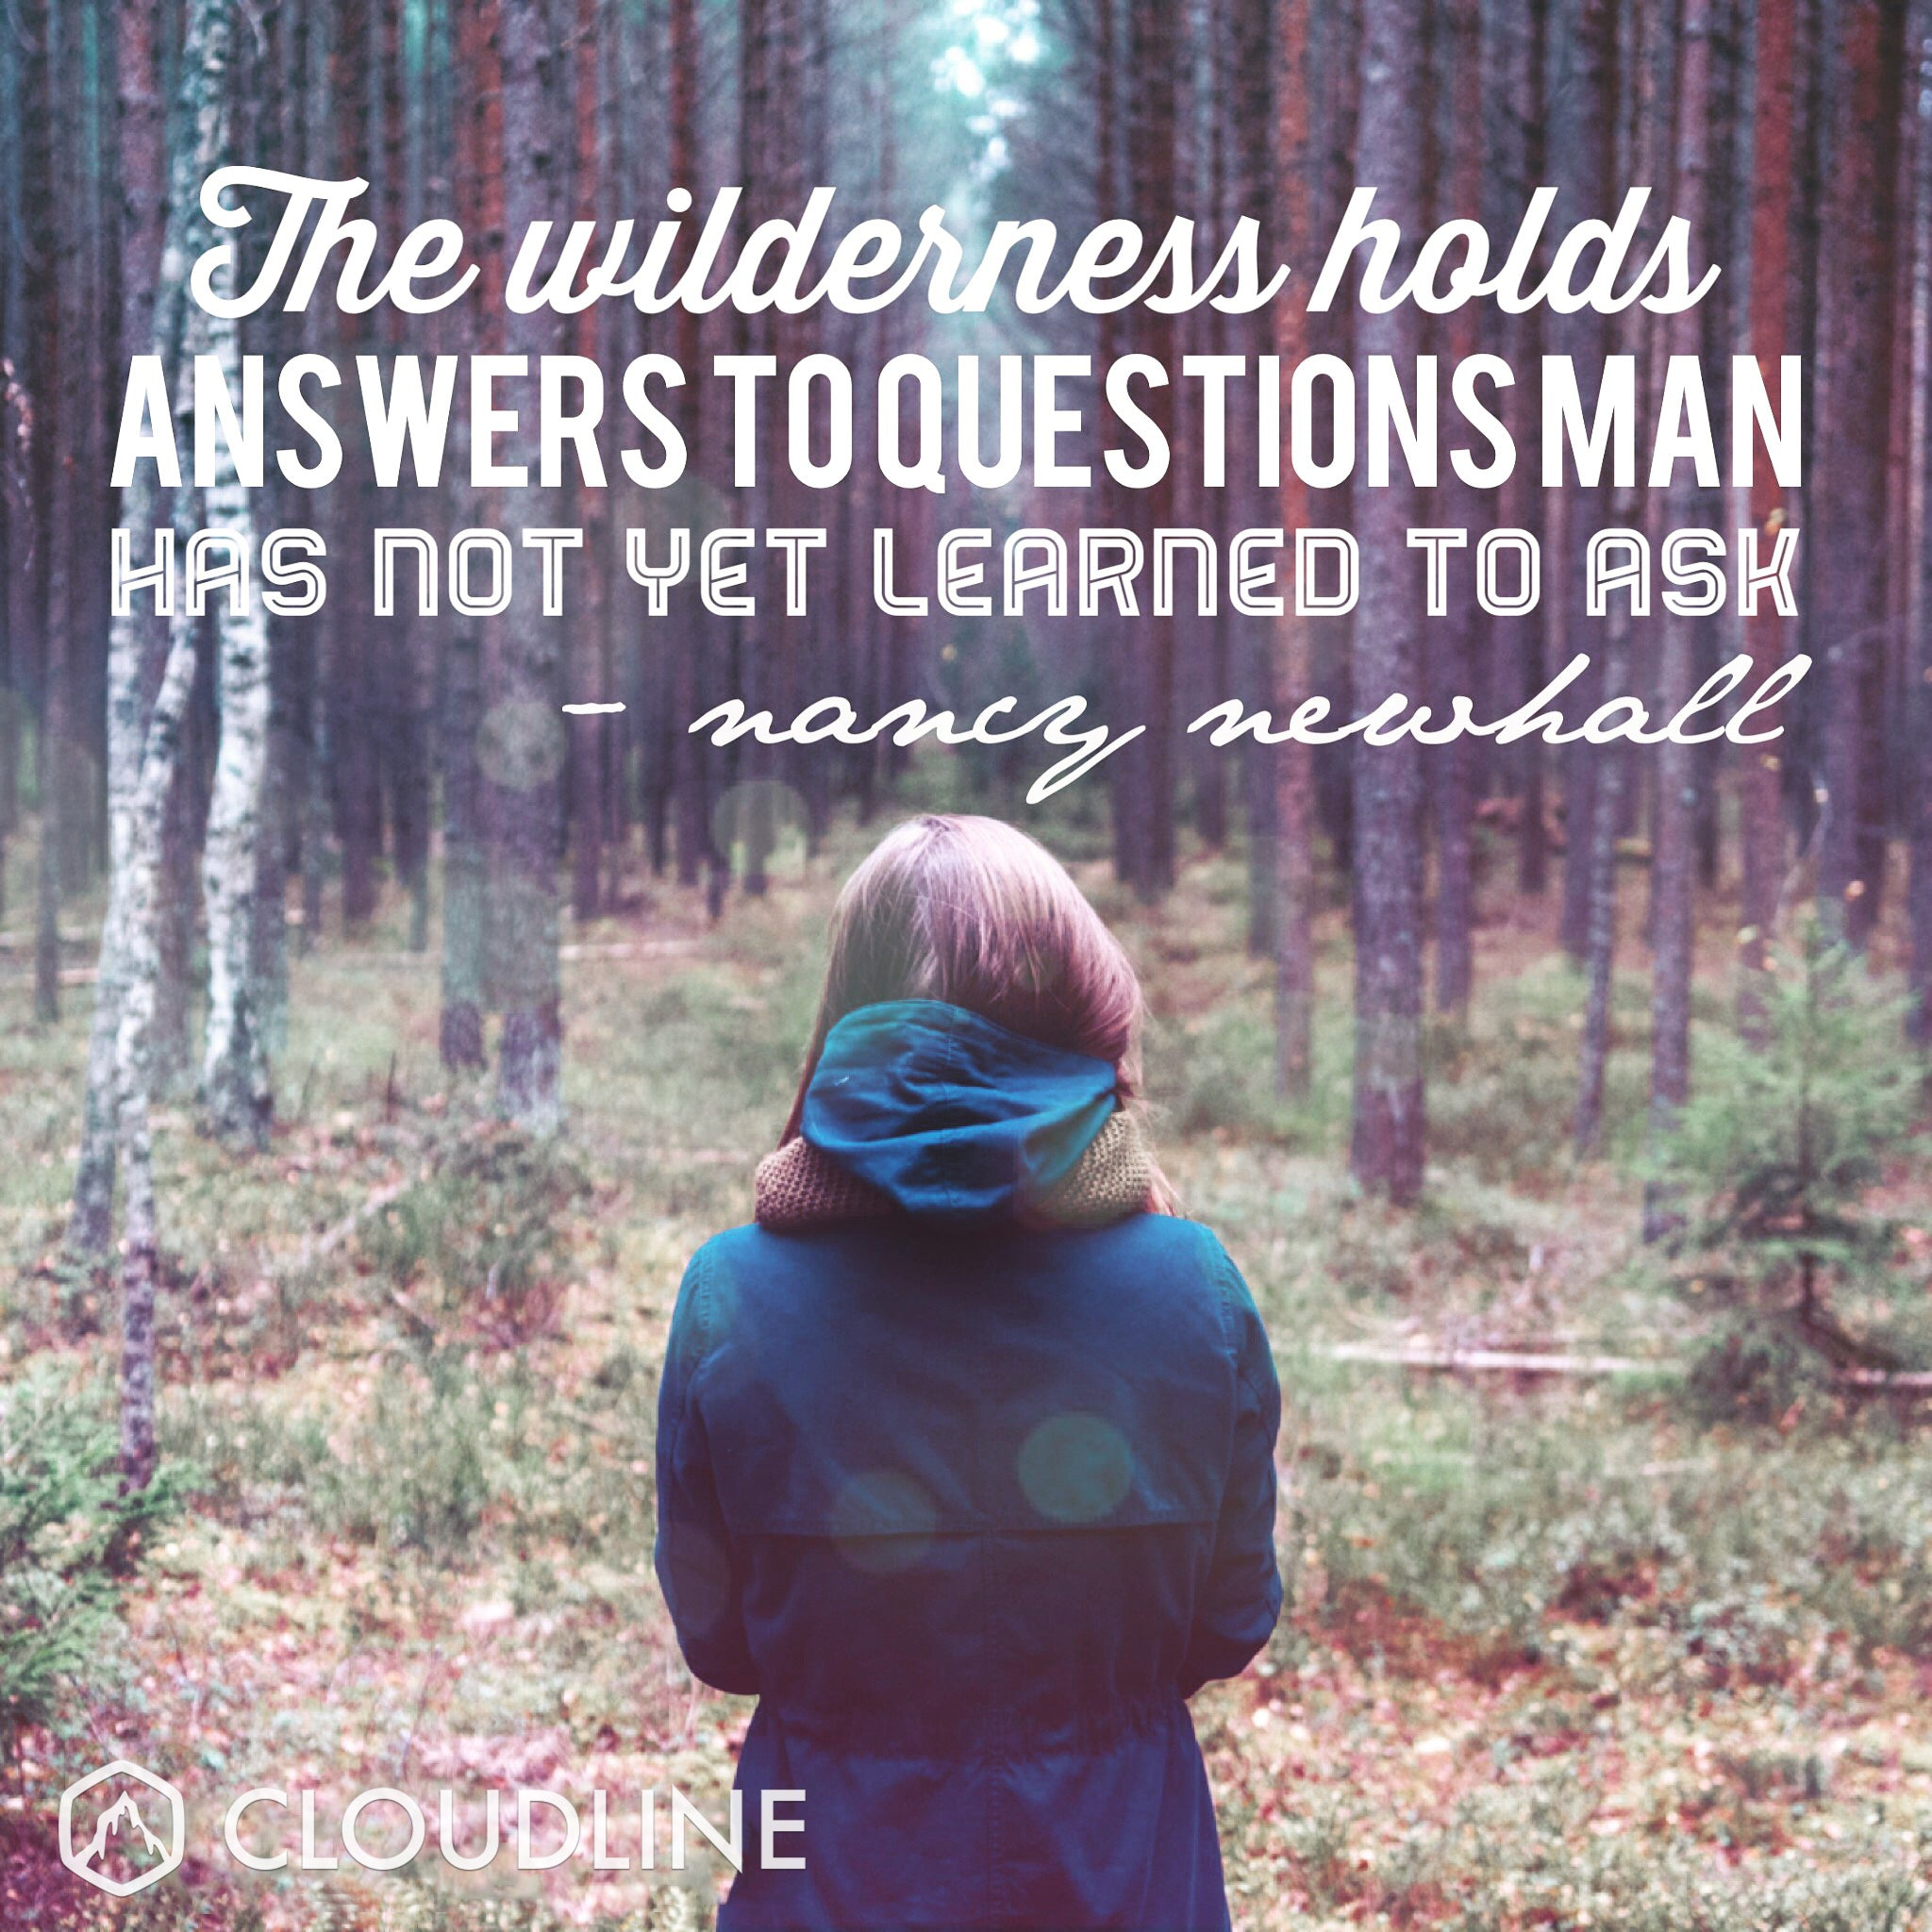 The wilderness holds answers to questions man has not yet learned to ask - Nancy Newhall